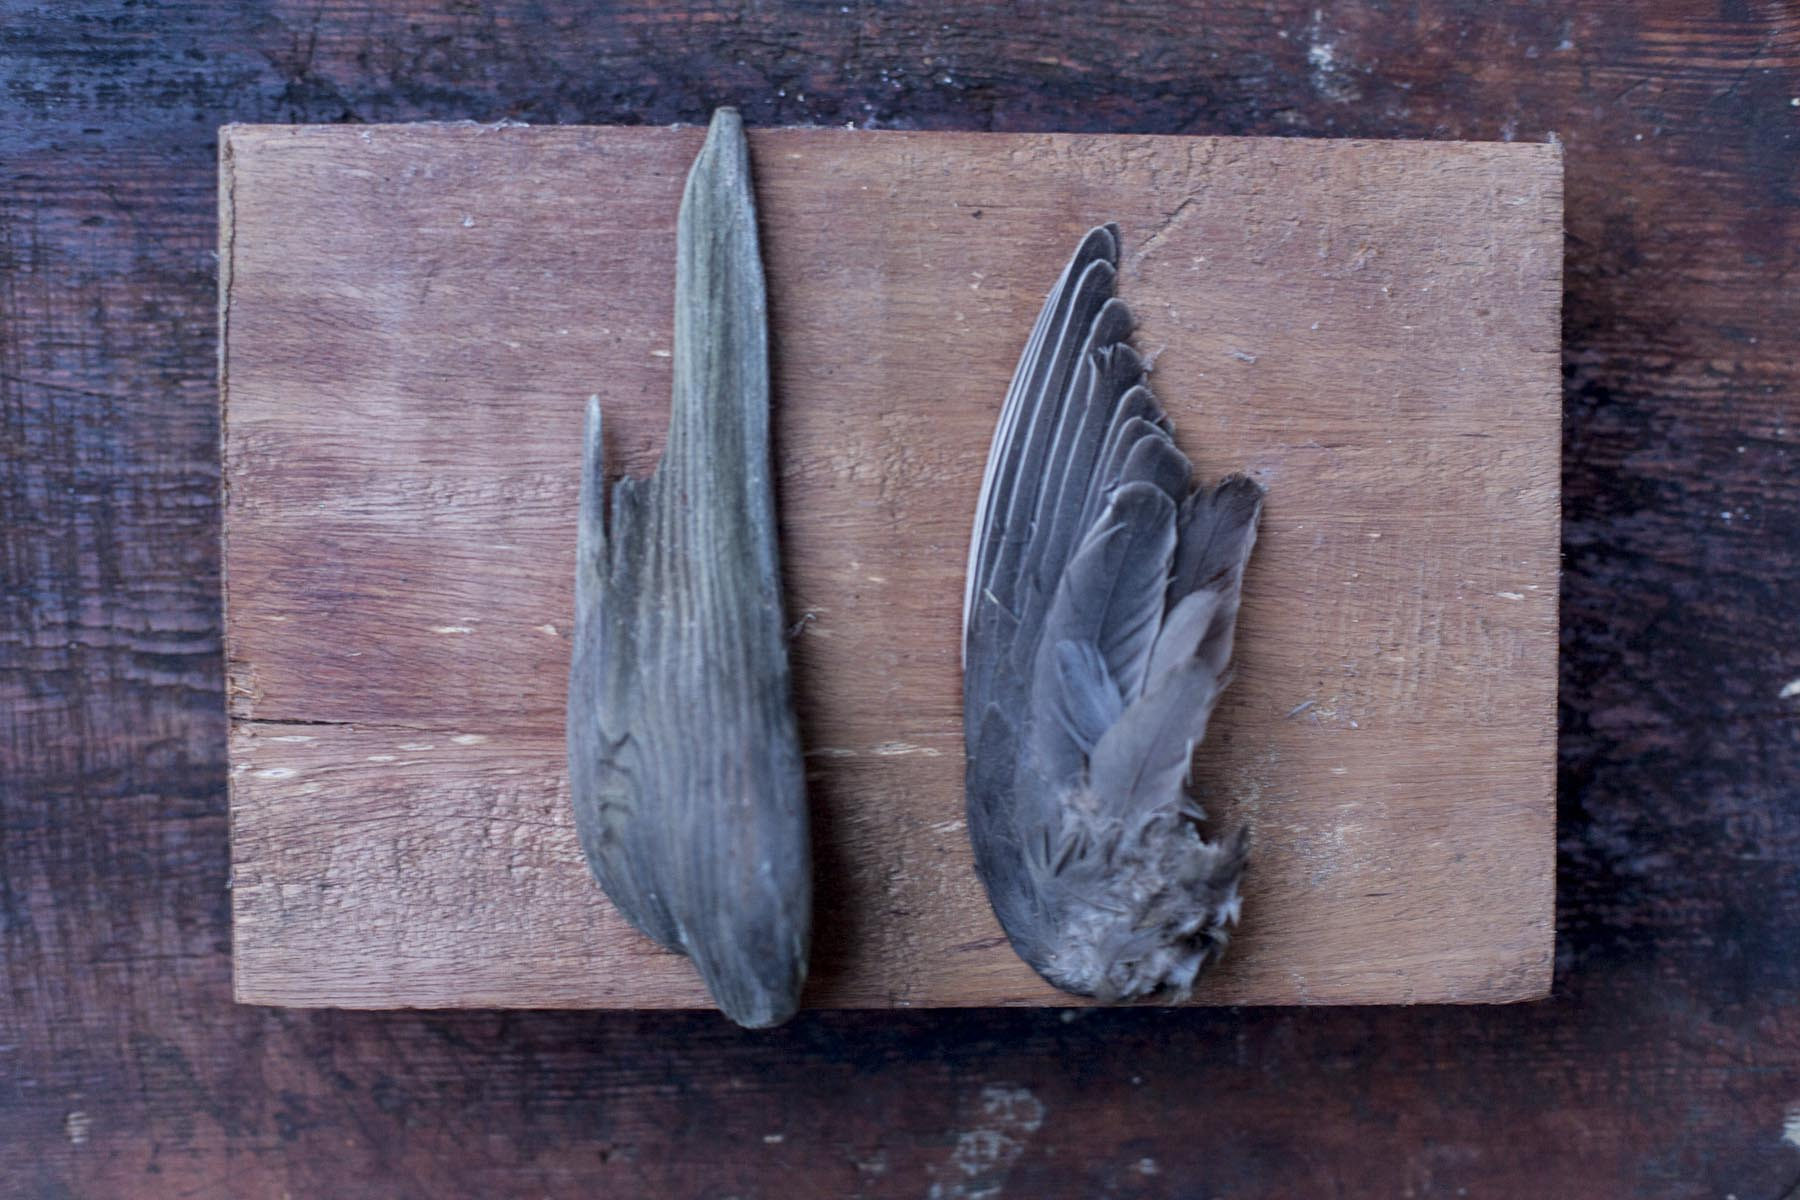 rinne: one day, i found both this bird's wing and this piece of wood at different times. they sit side by side in my studio, mirroring each other.